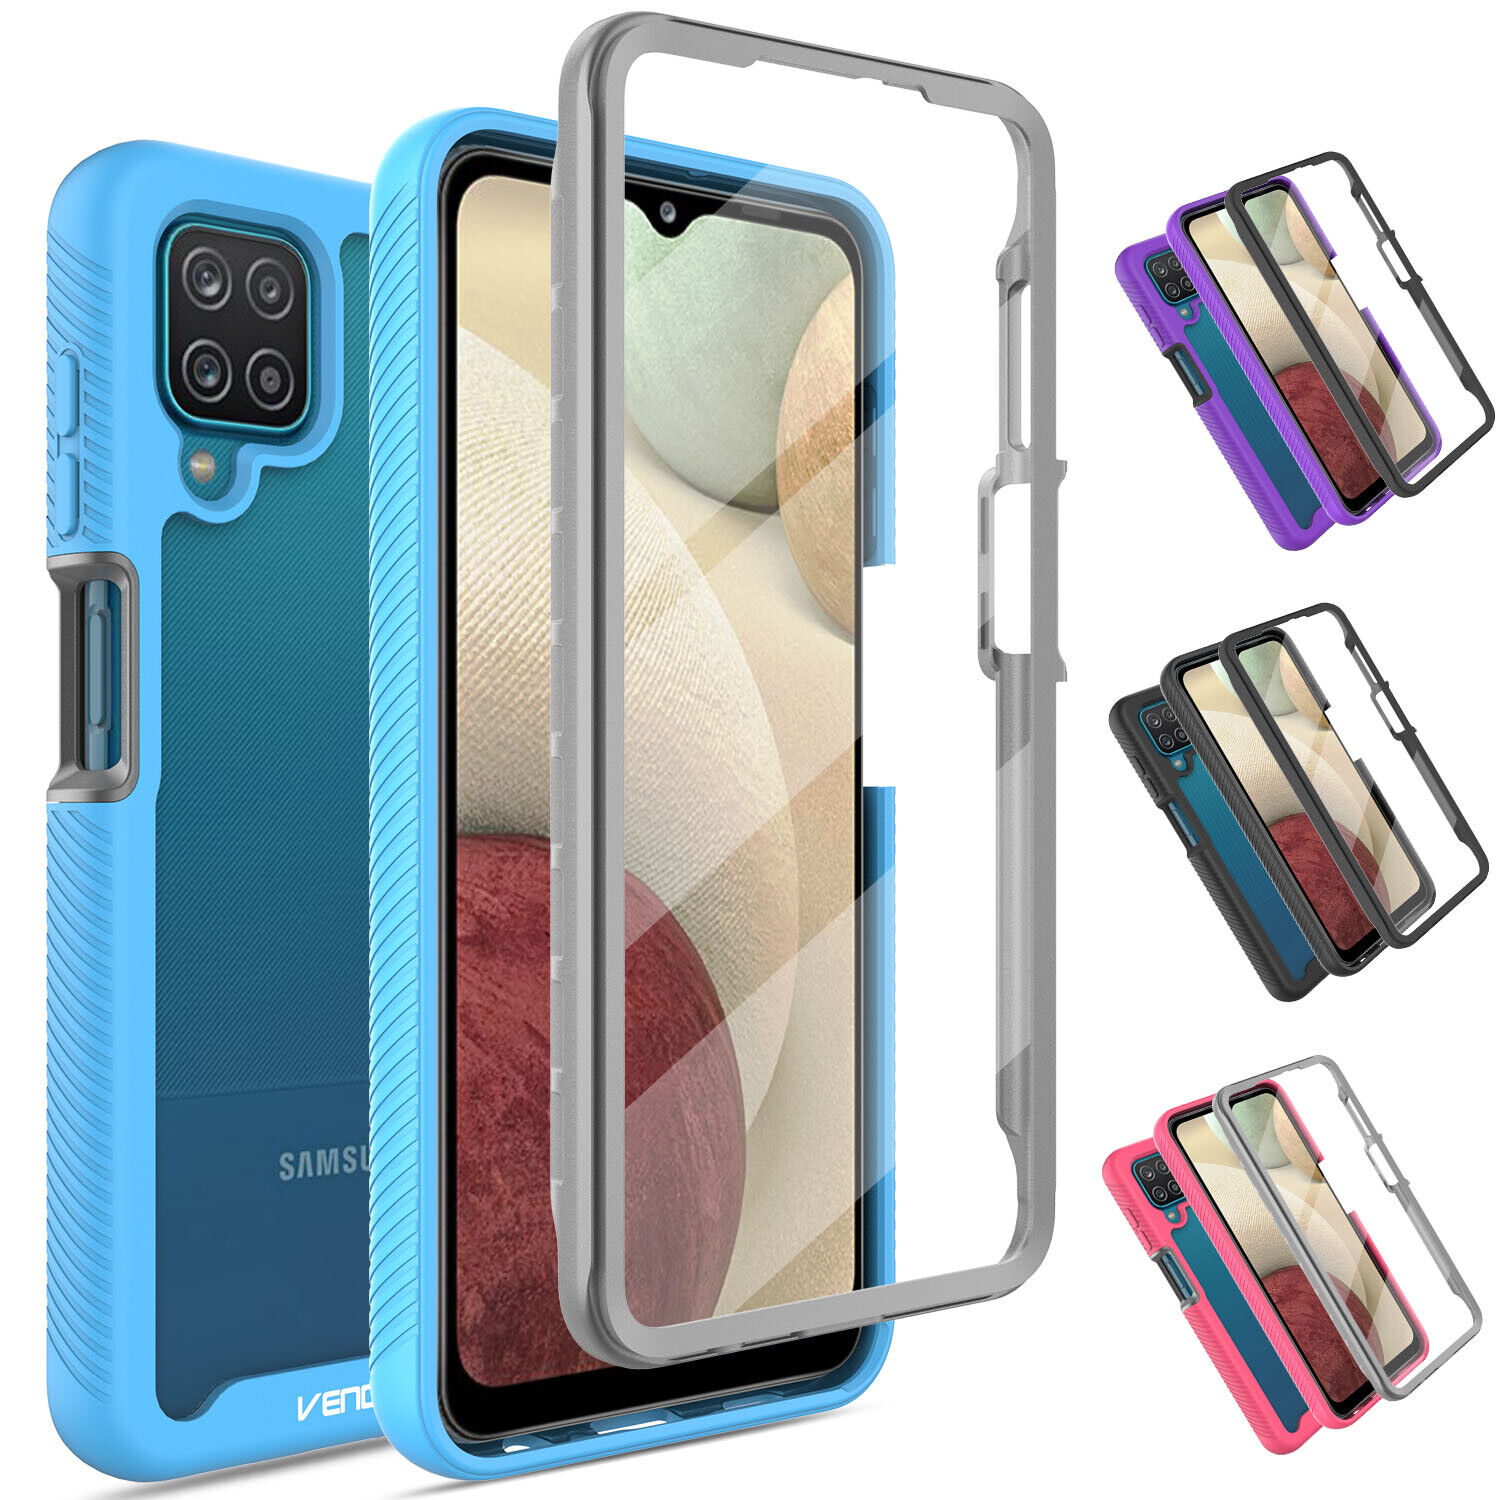 For Samsung Galaxy A12 Clear Case Hybrid Cover With Built-in Screen Protector Cases, Covers & Skins